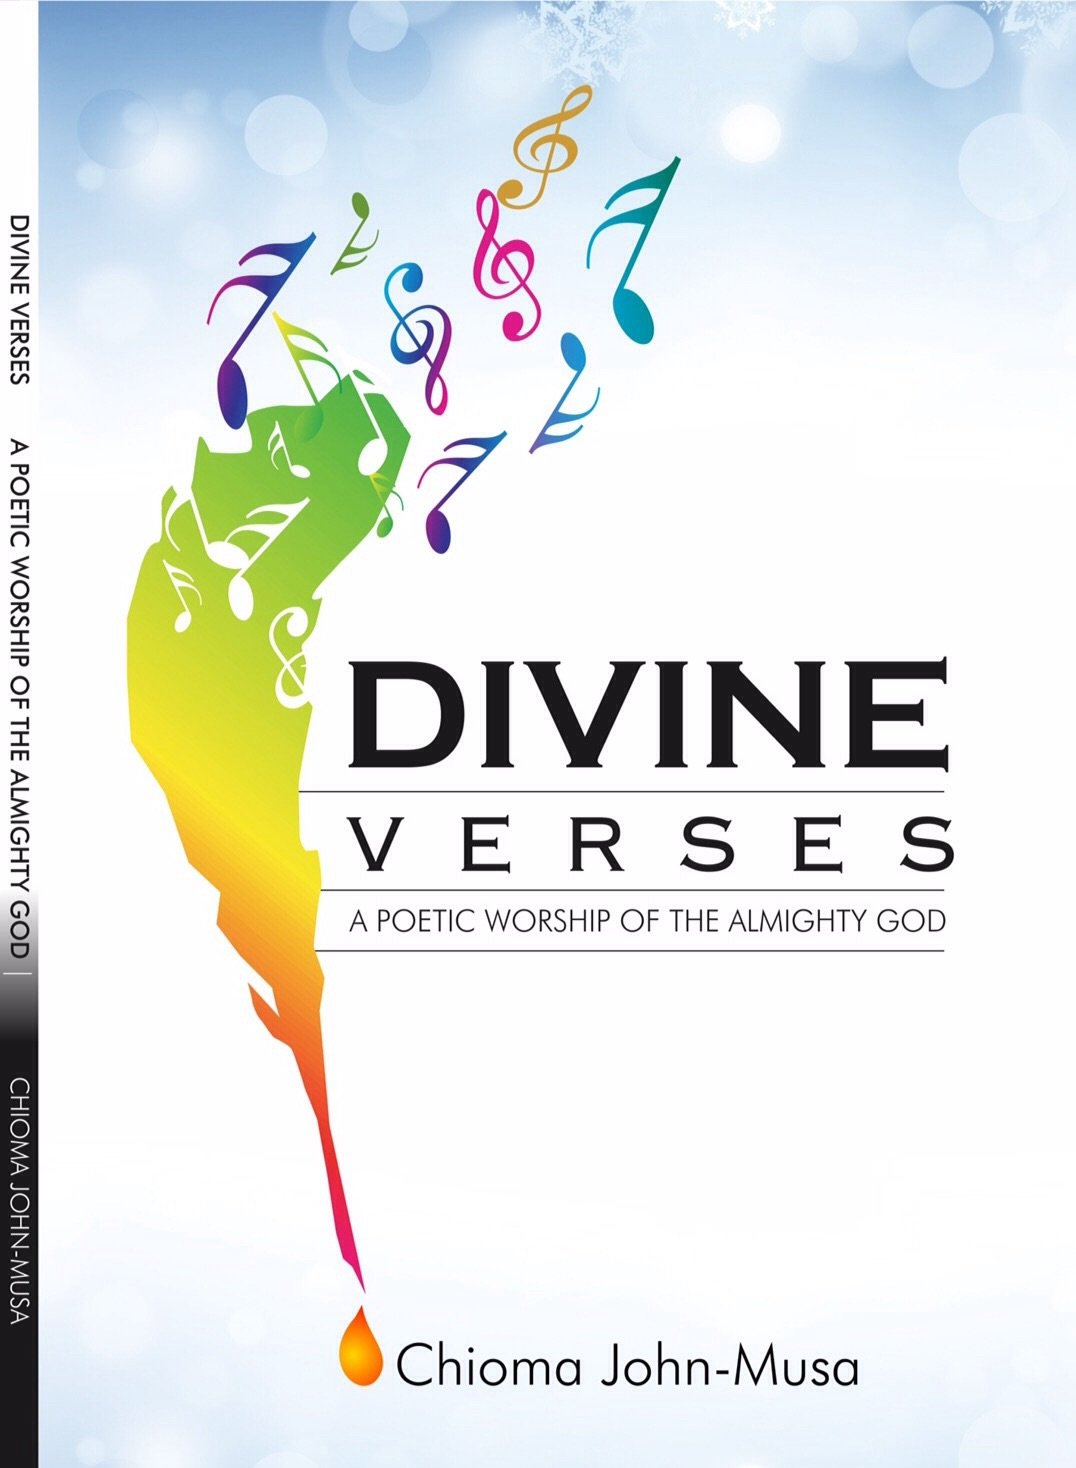 Divine Verses (A Poetic Worship of the Almighty God): Amazon